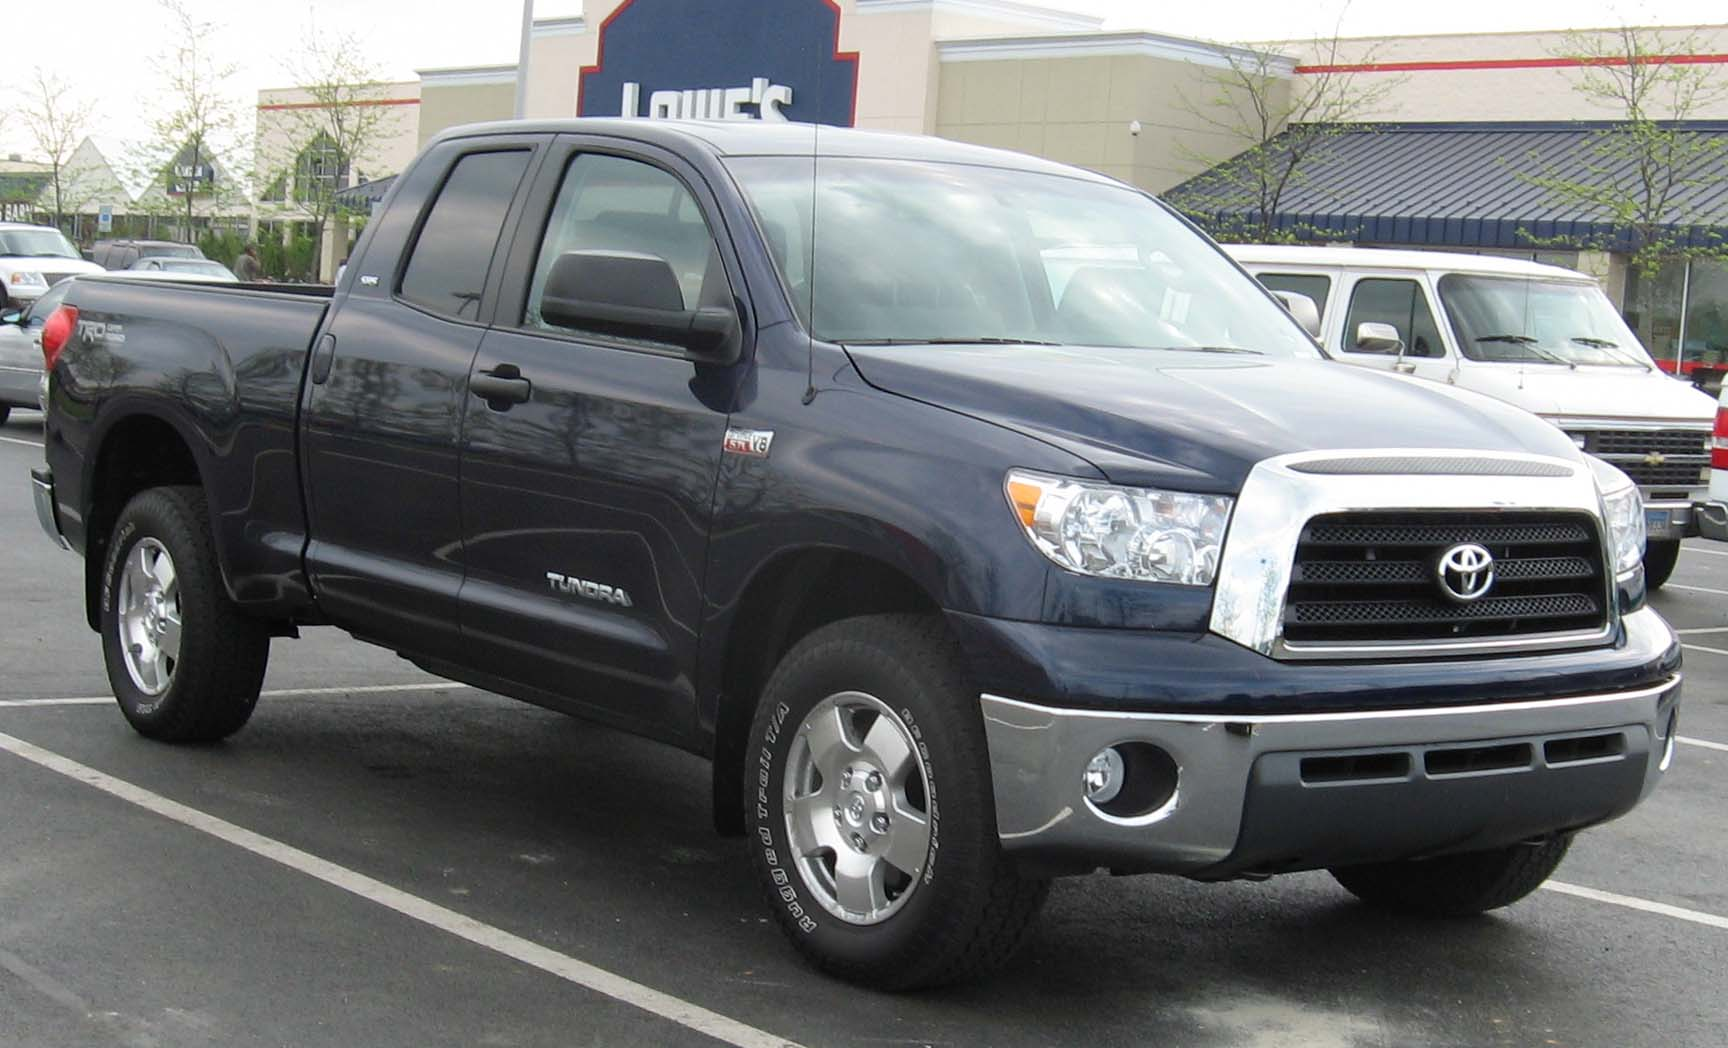 https://upload.wikimedia.org/wikipedia/commons/f/f1/2007-Toyota-Tundra-DoubleCab.jpg